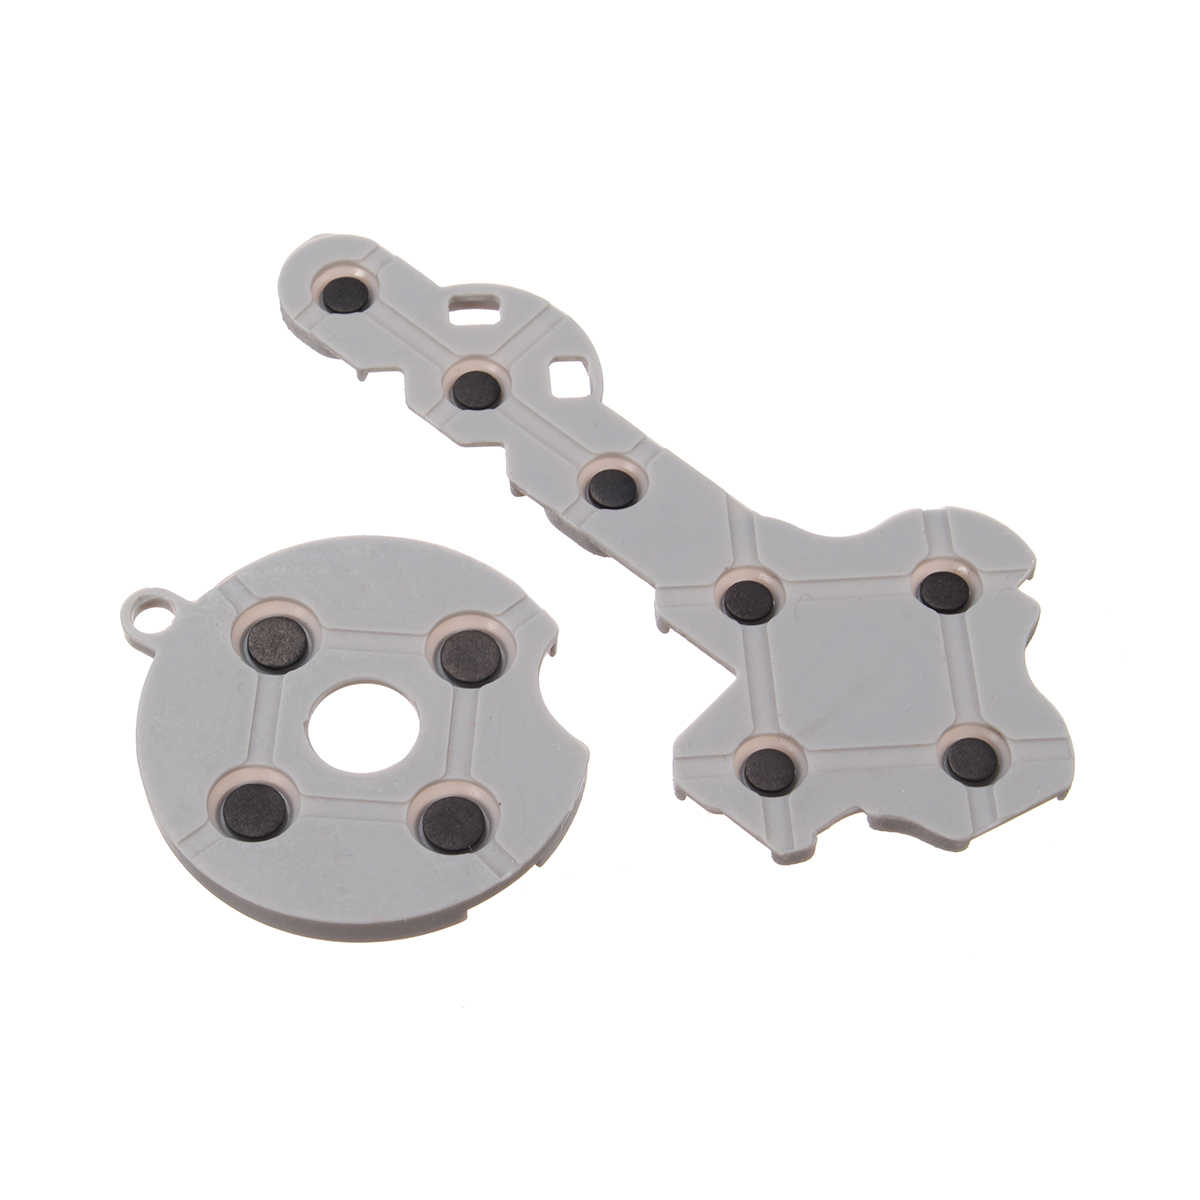 Rubber Contact Pad Knop Controller Geleidende D-Pad voor Microsoft X-box 360 Vervanging Knop Vulstoffen Modules